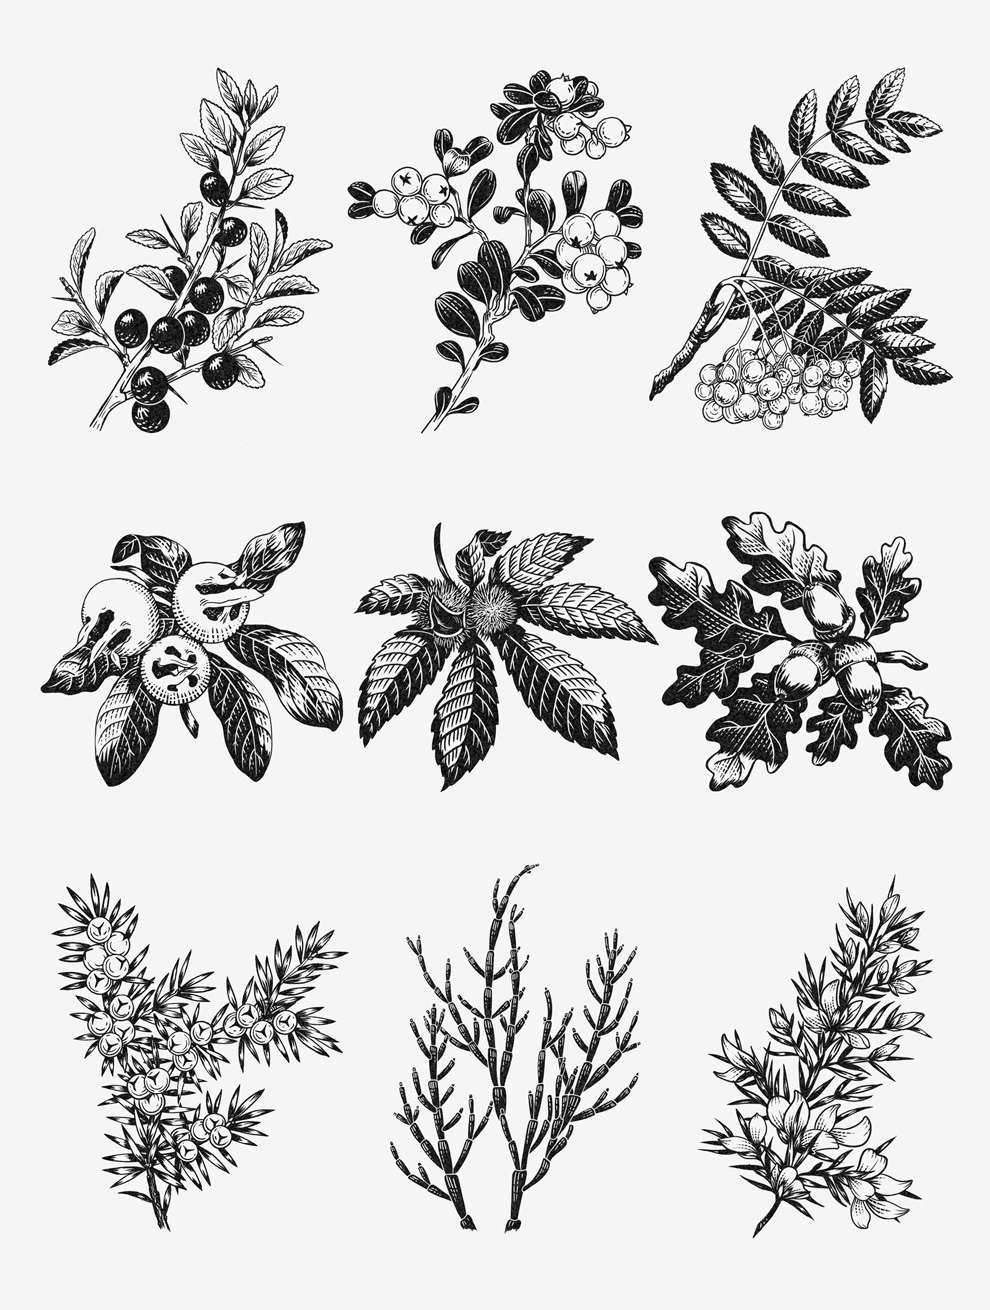 Charlotte Day, Detailed drawing of botanical elements.